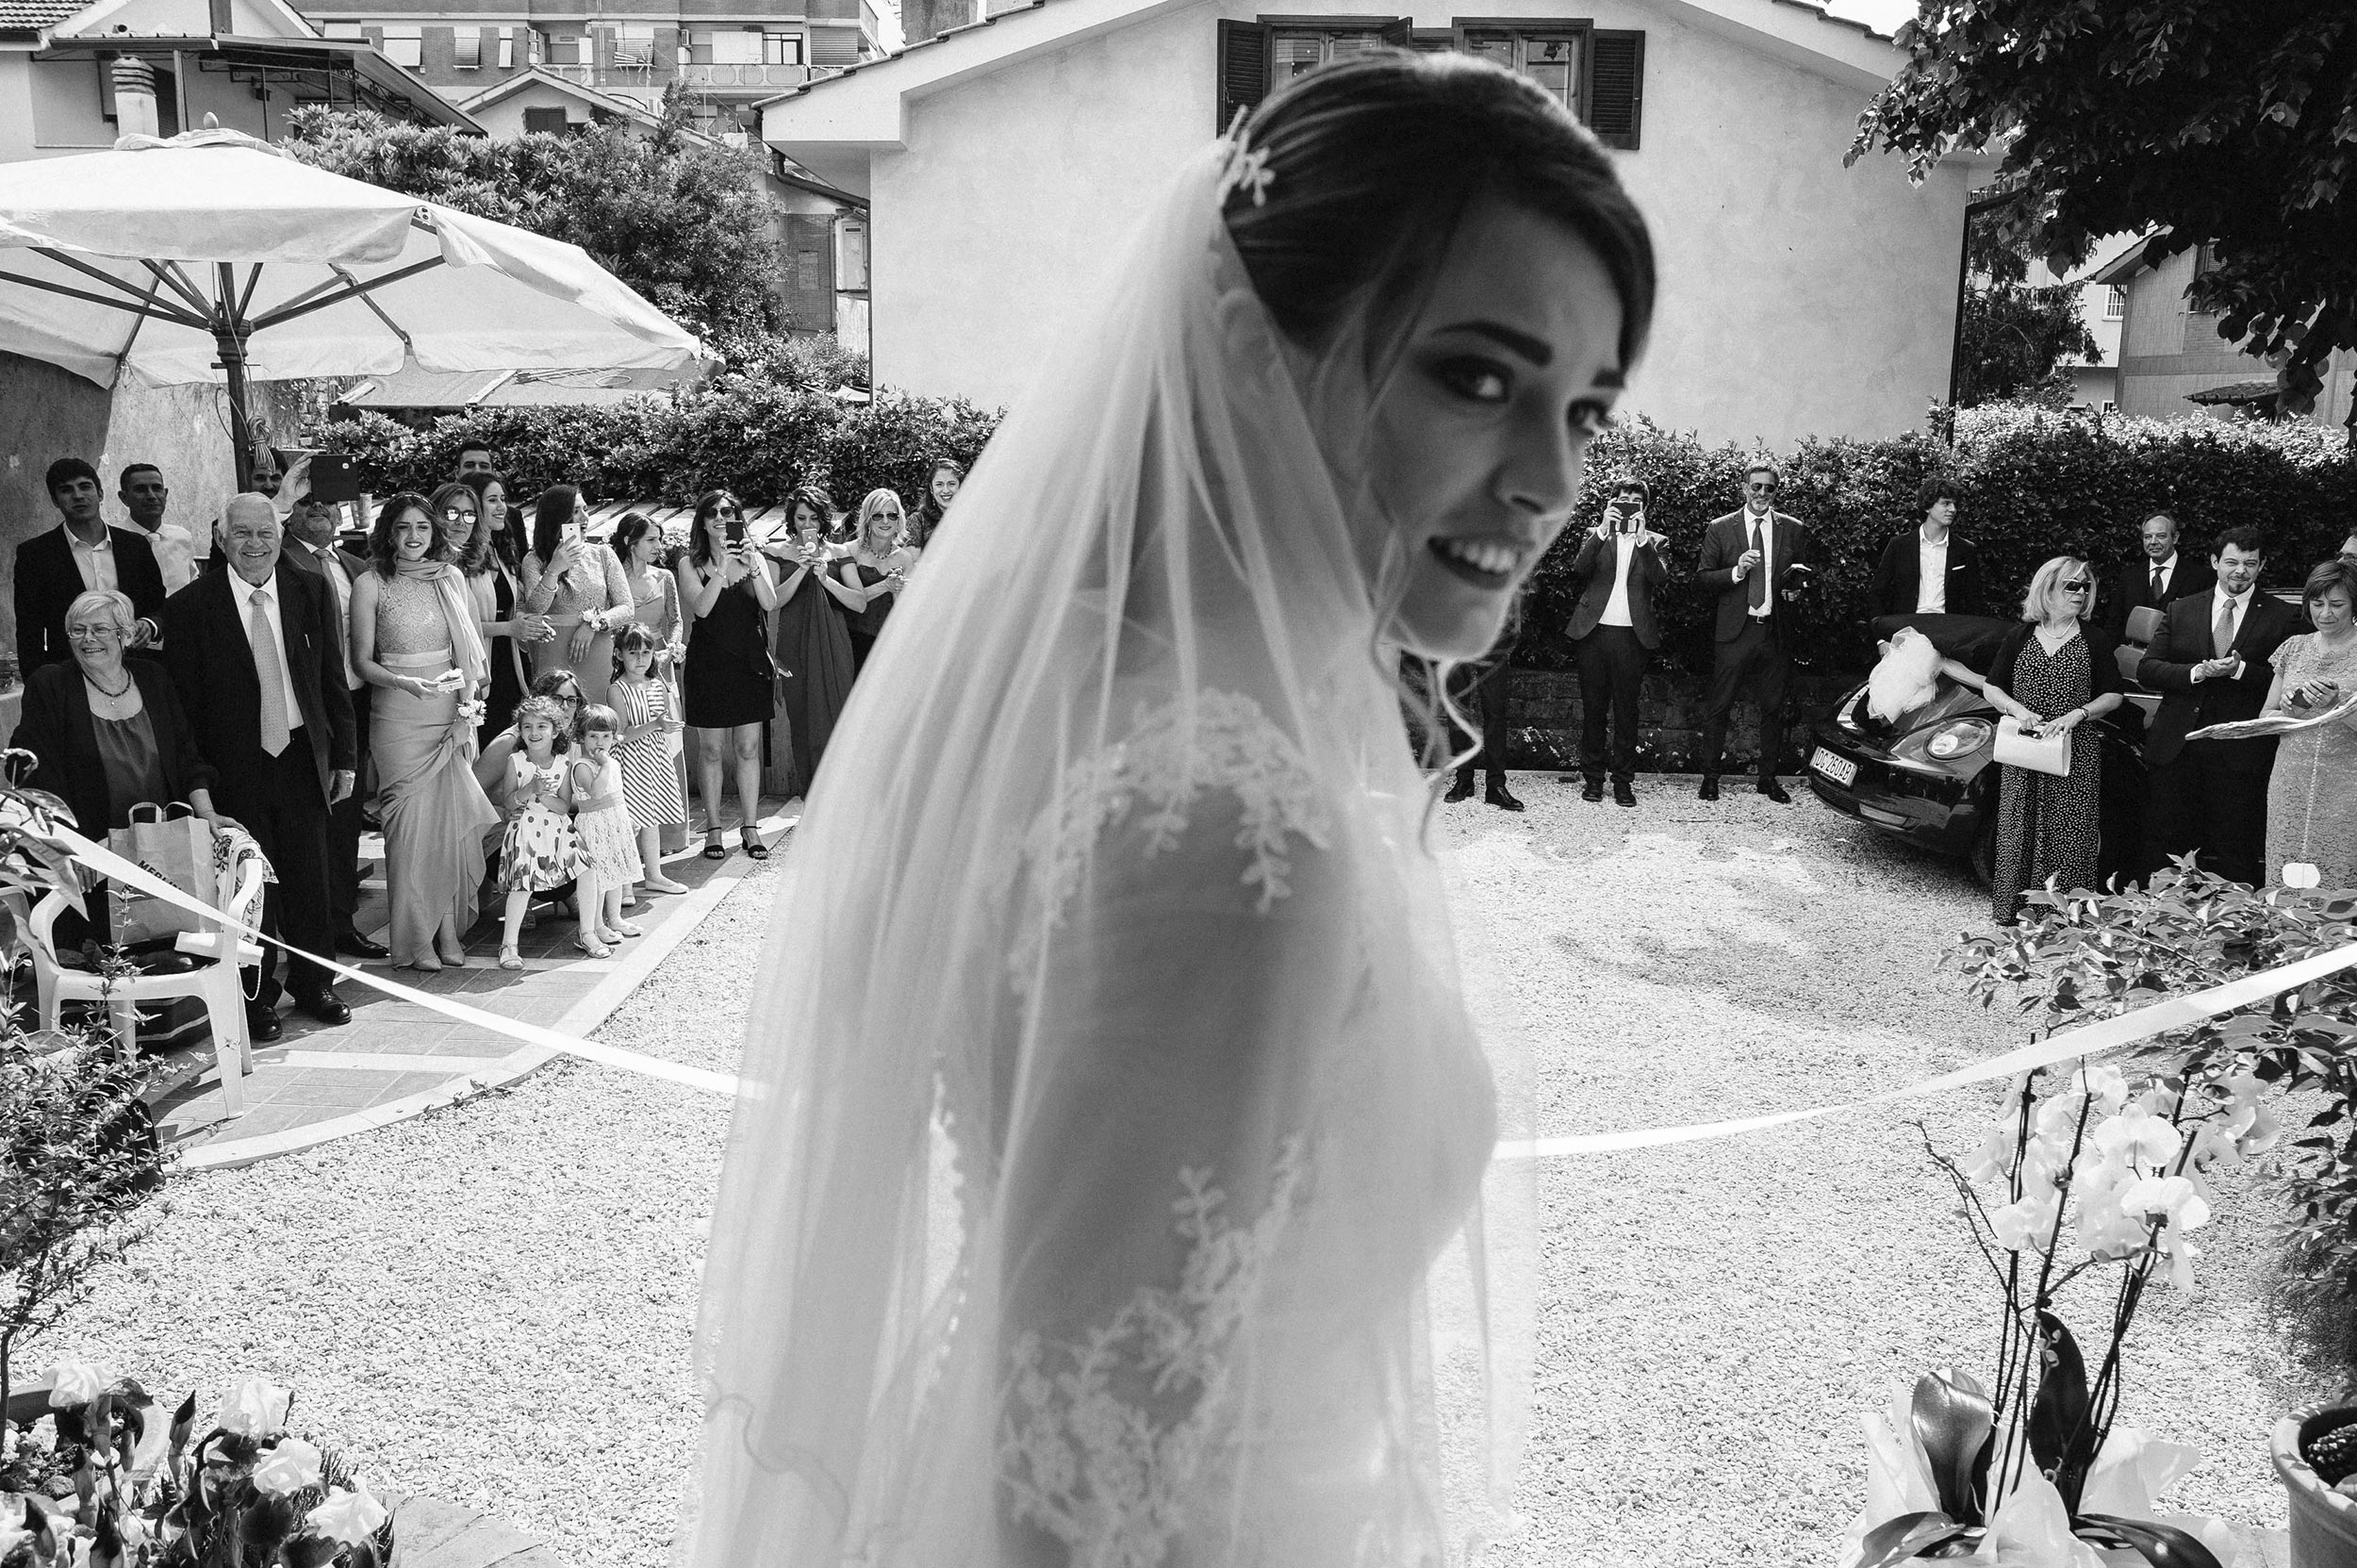 telling-stories-the-bride-black-and-white-candid-documentary-wedding-photography-by-Alessandro-Avenali.jpg